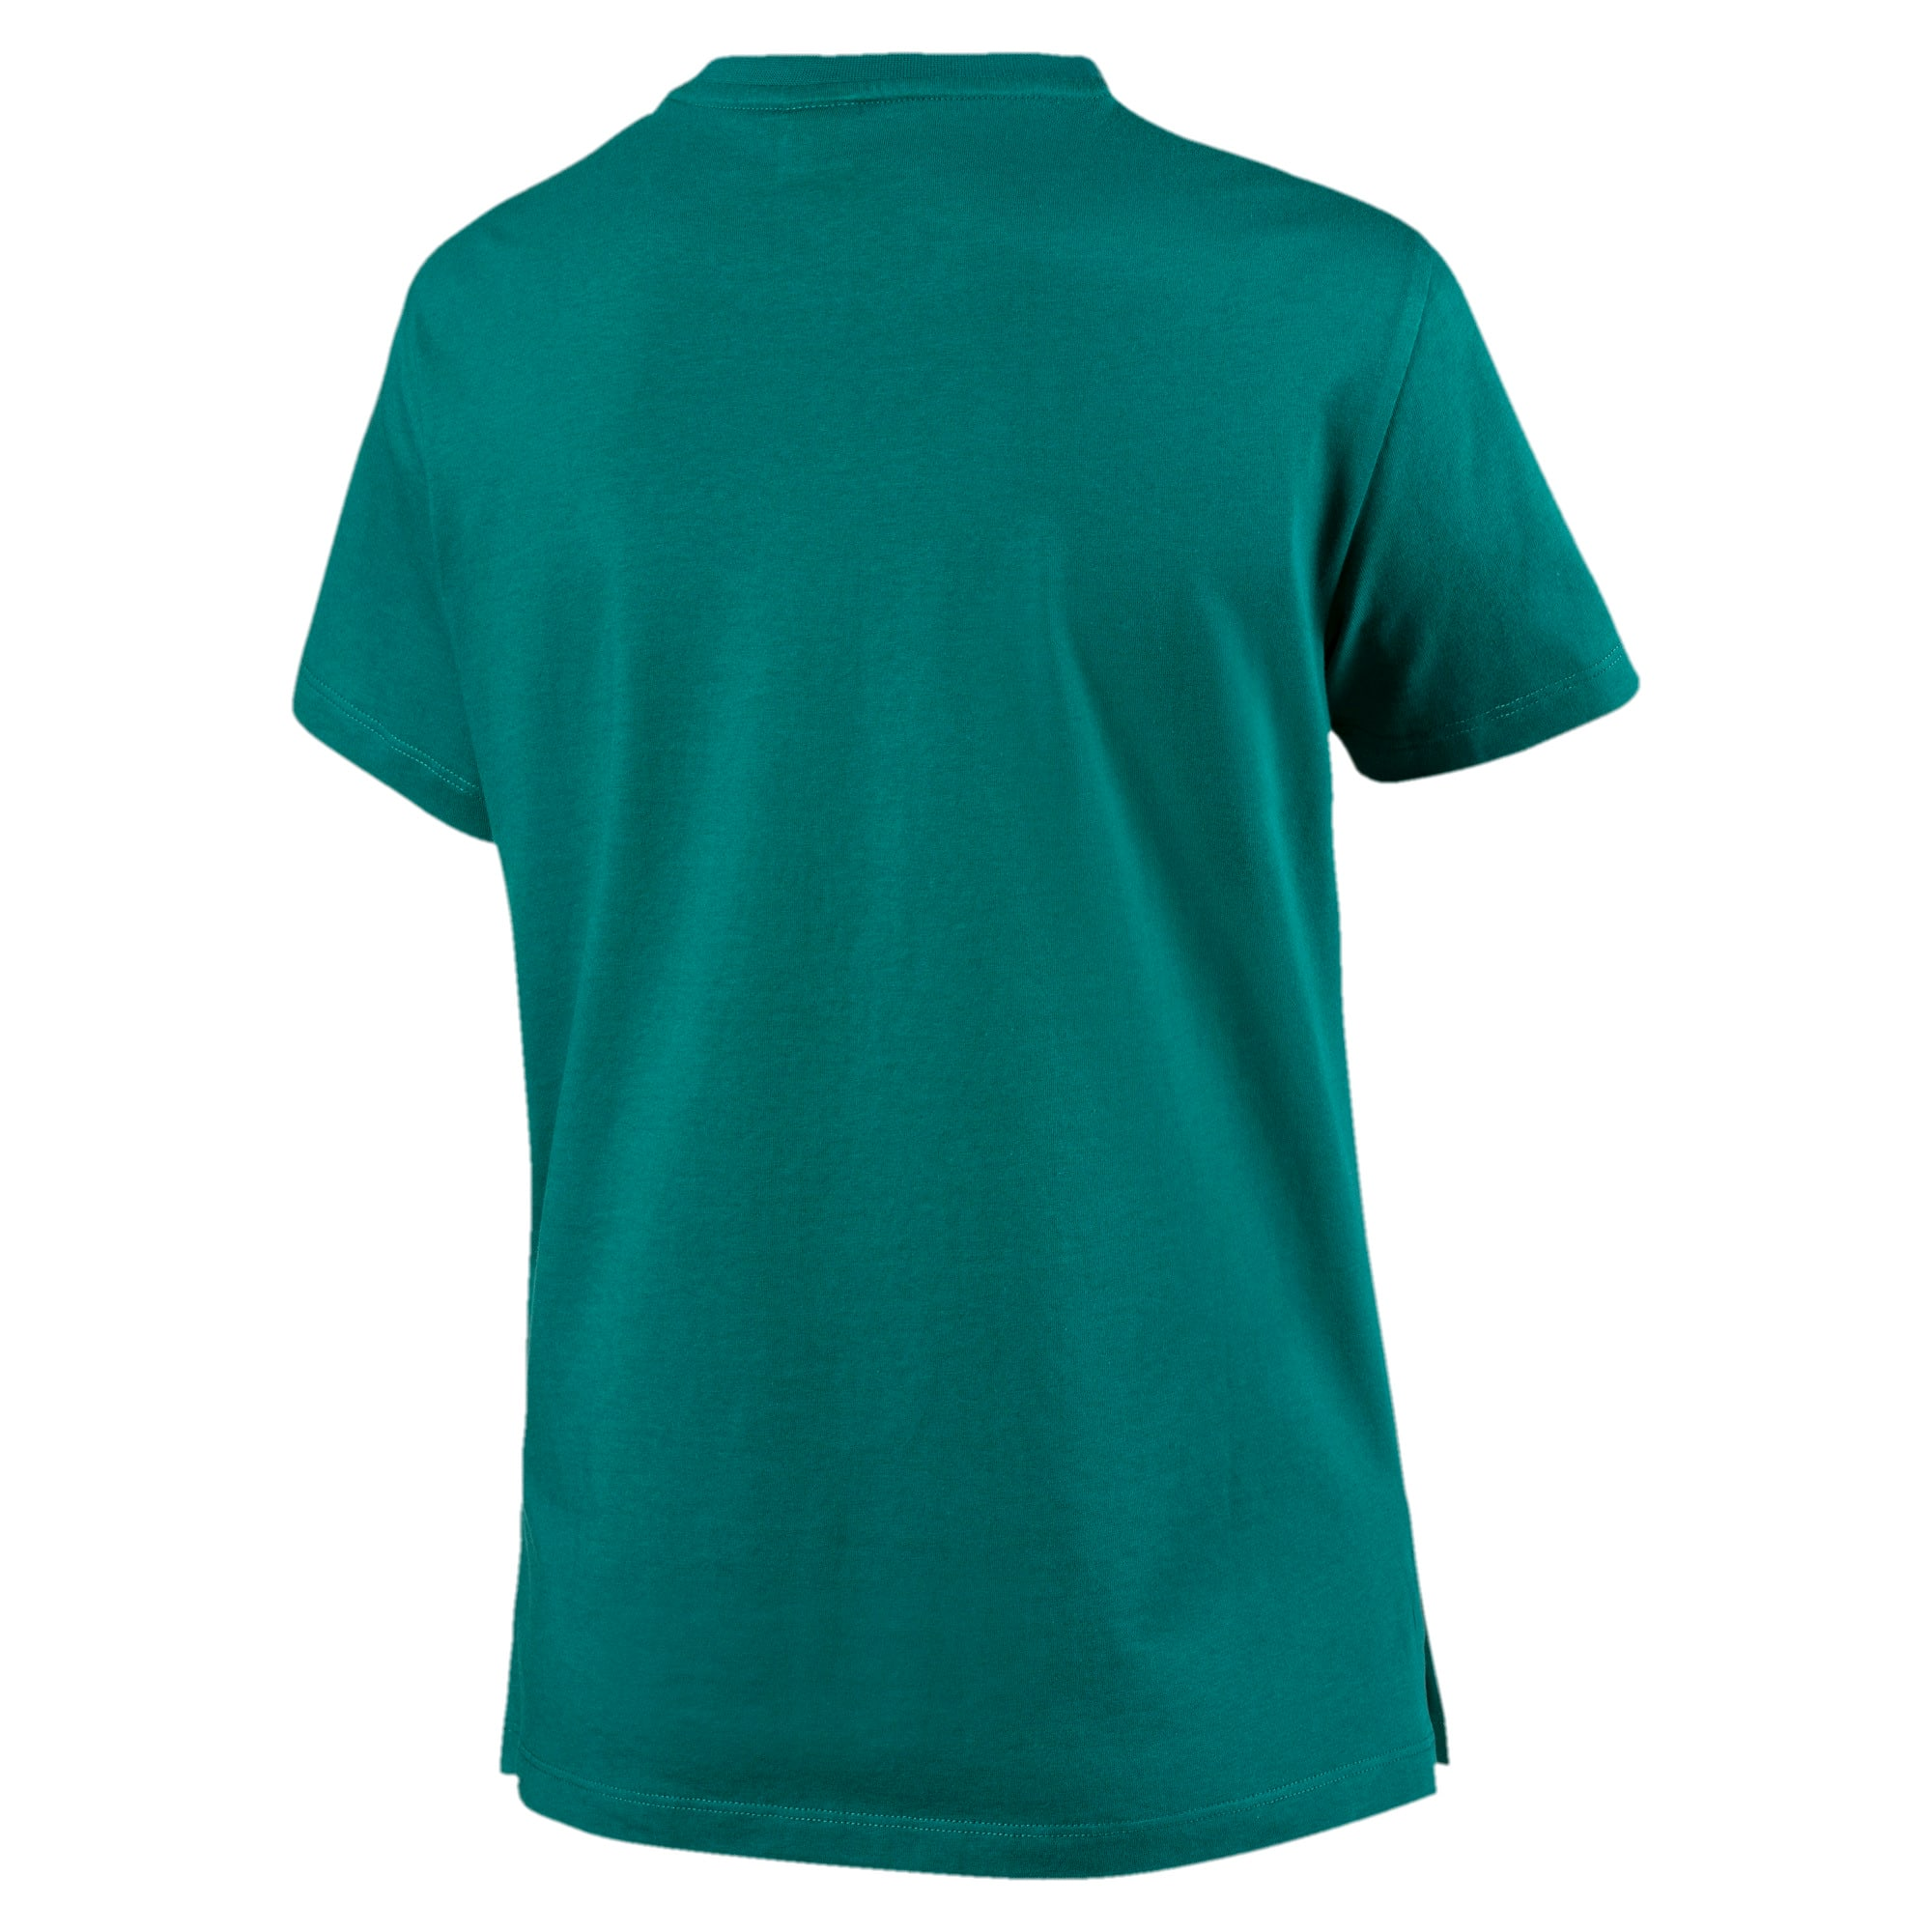 Thumbnail 5 of Classics Women's Logo Tee, Teal Green, medium